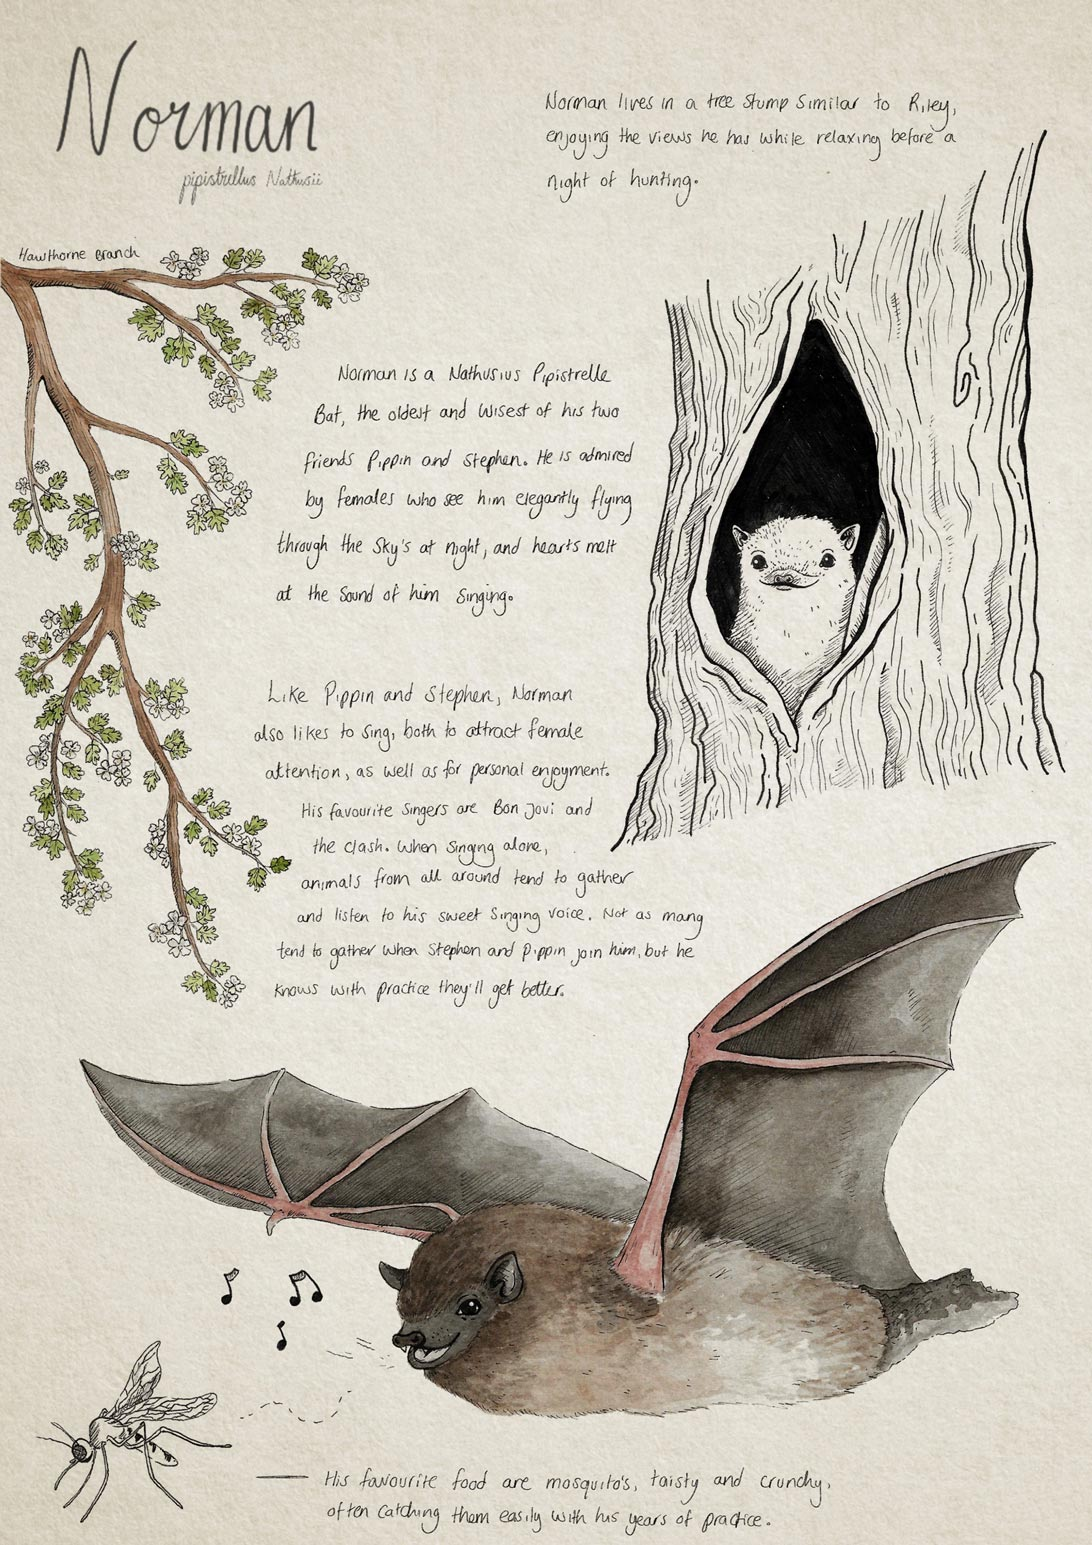 illustration and handwritten text information about the Norman bat